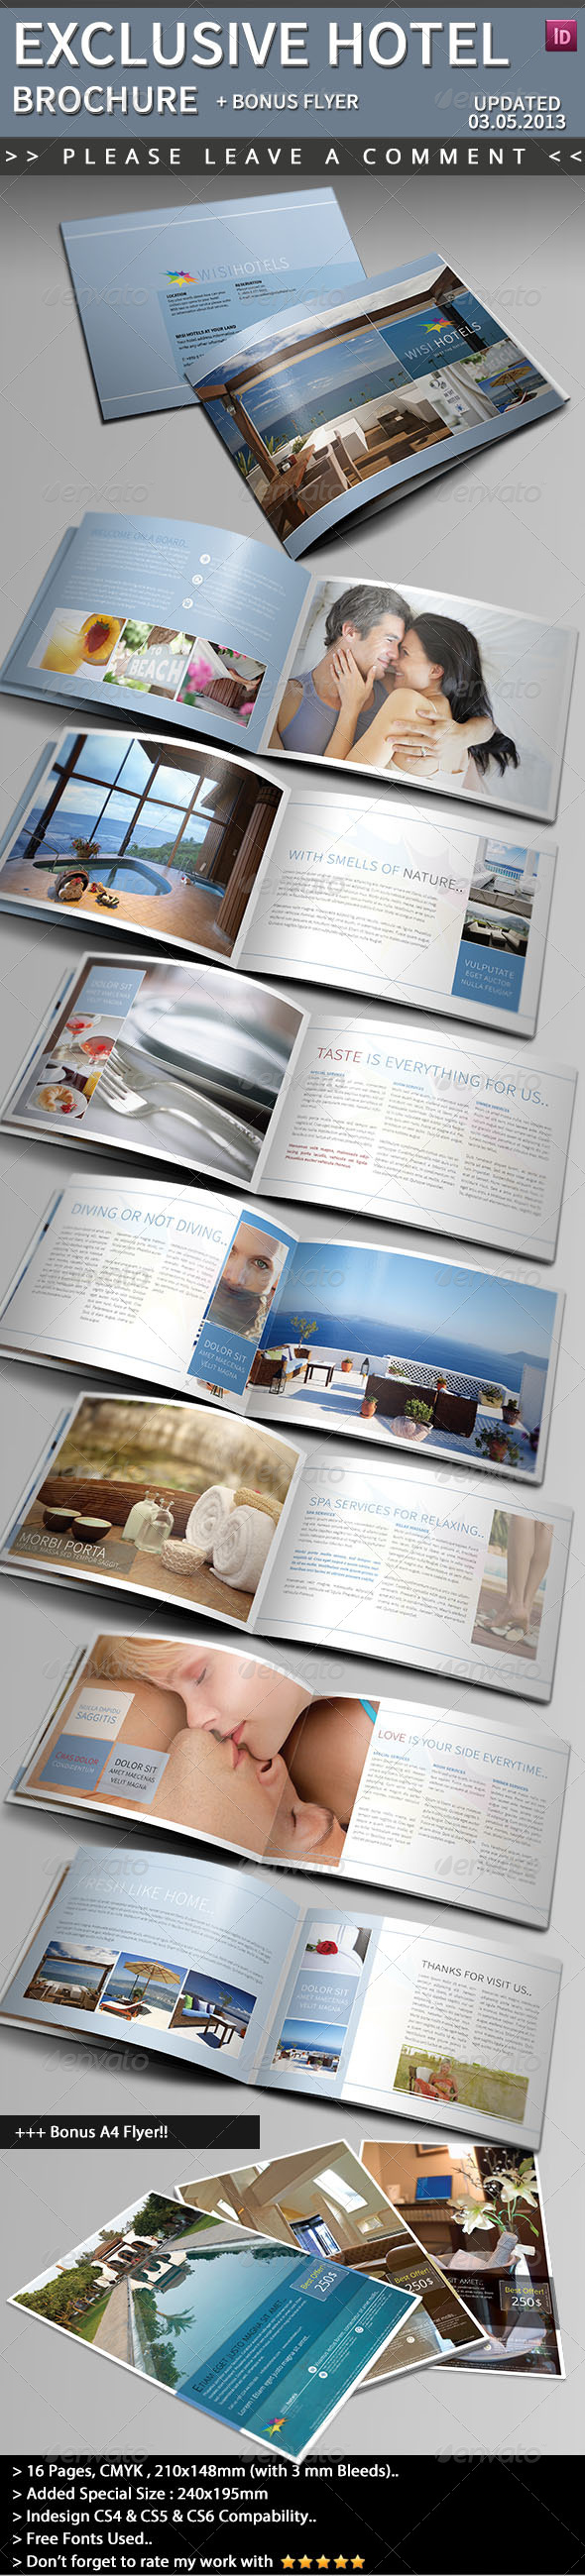 Exclusive Hotel Brochure - Informational Brochures